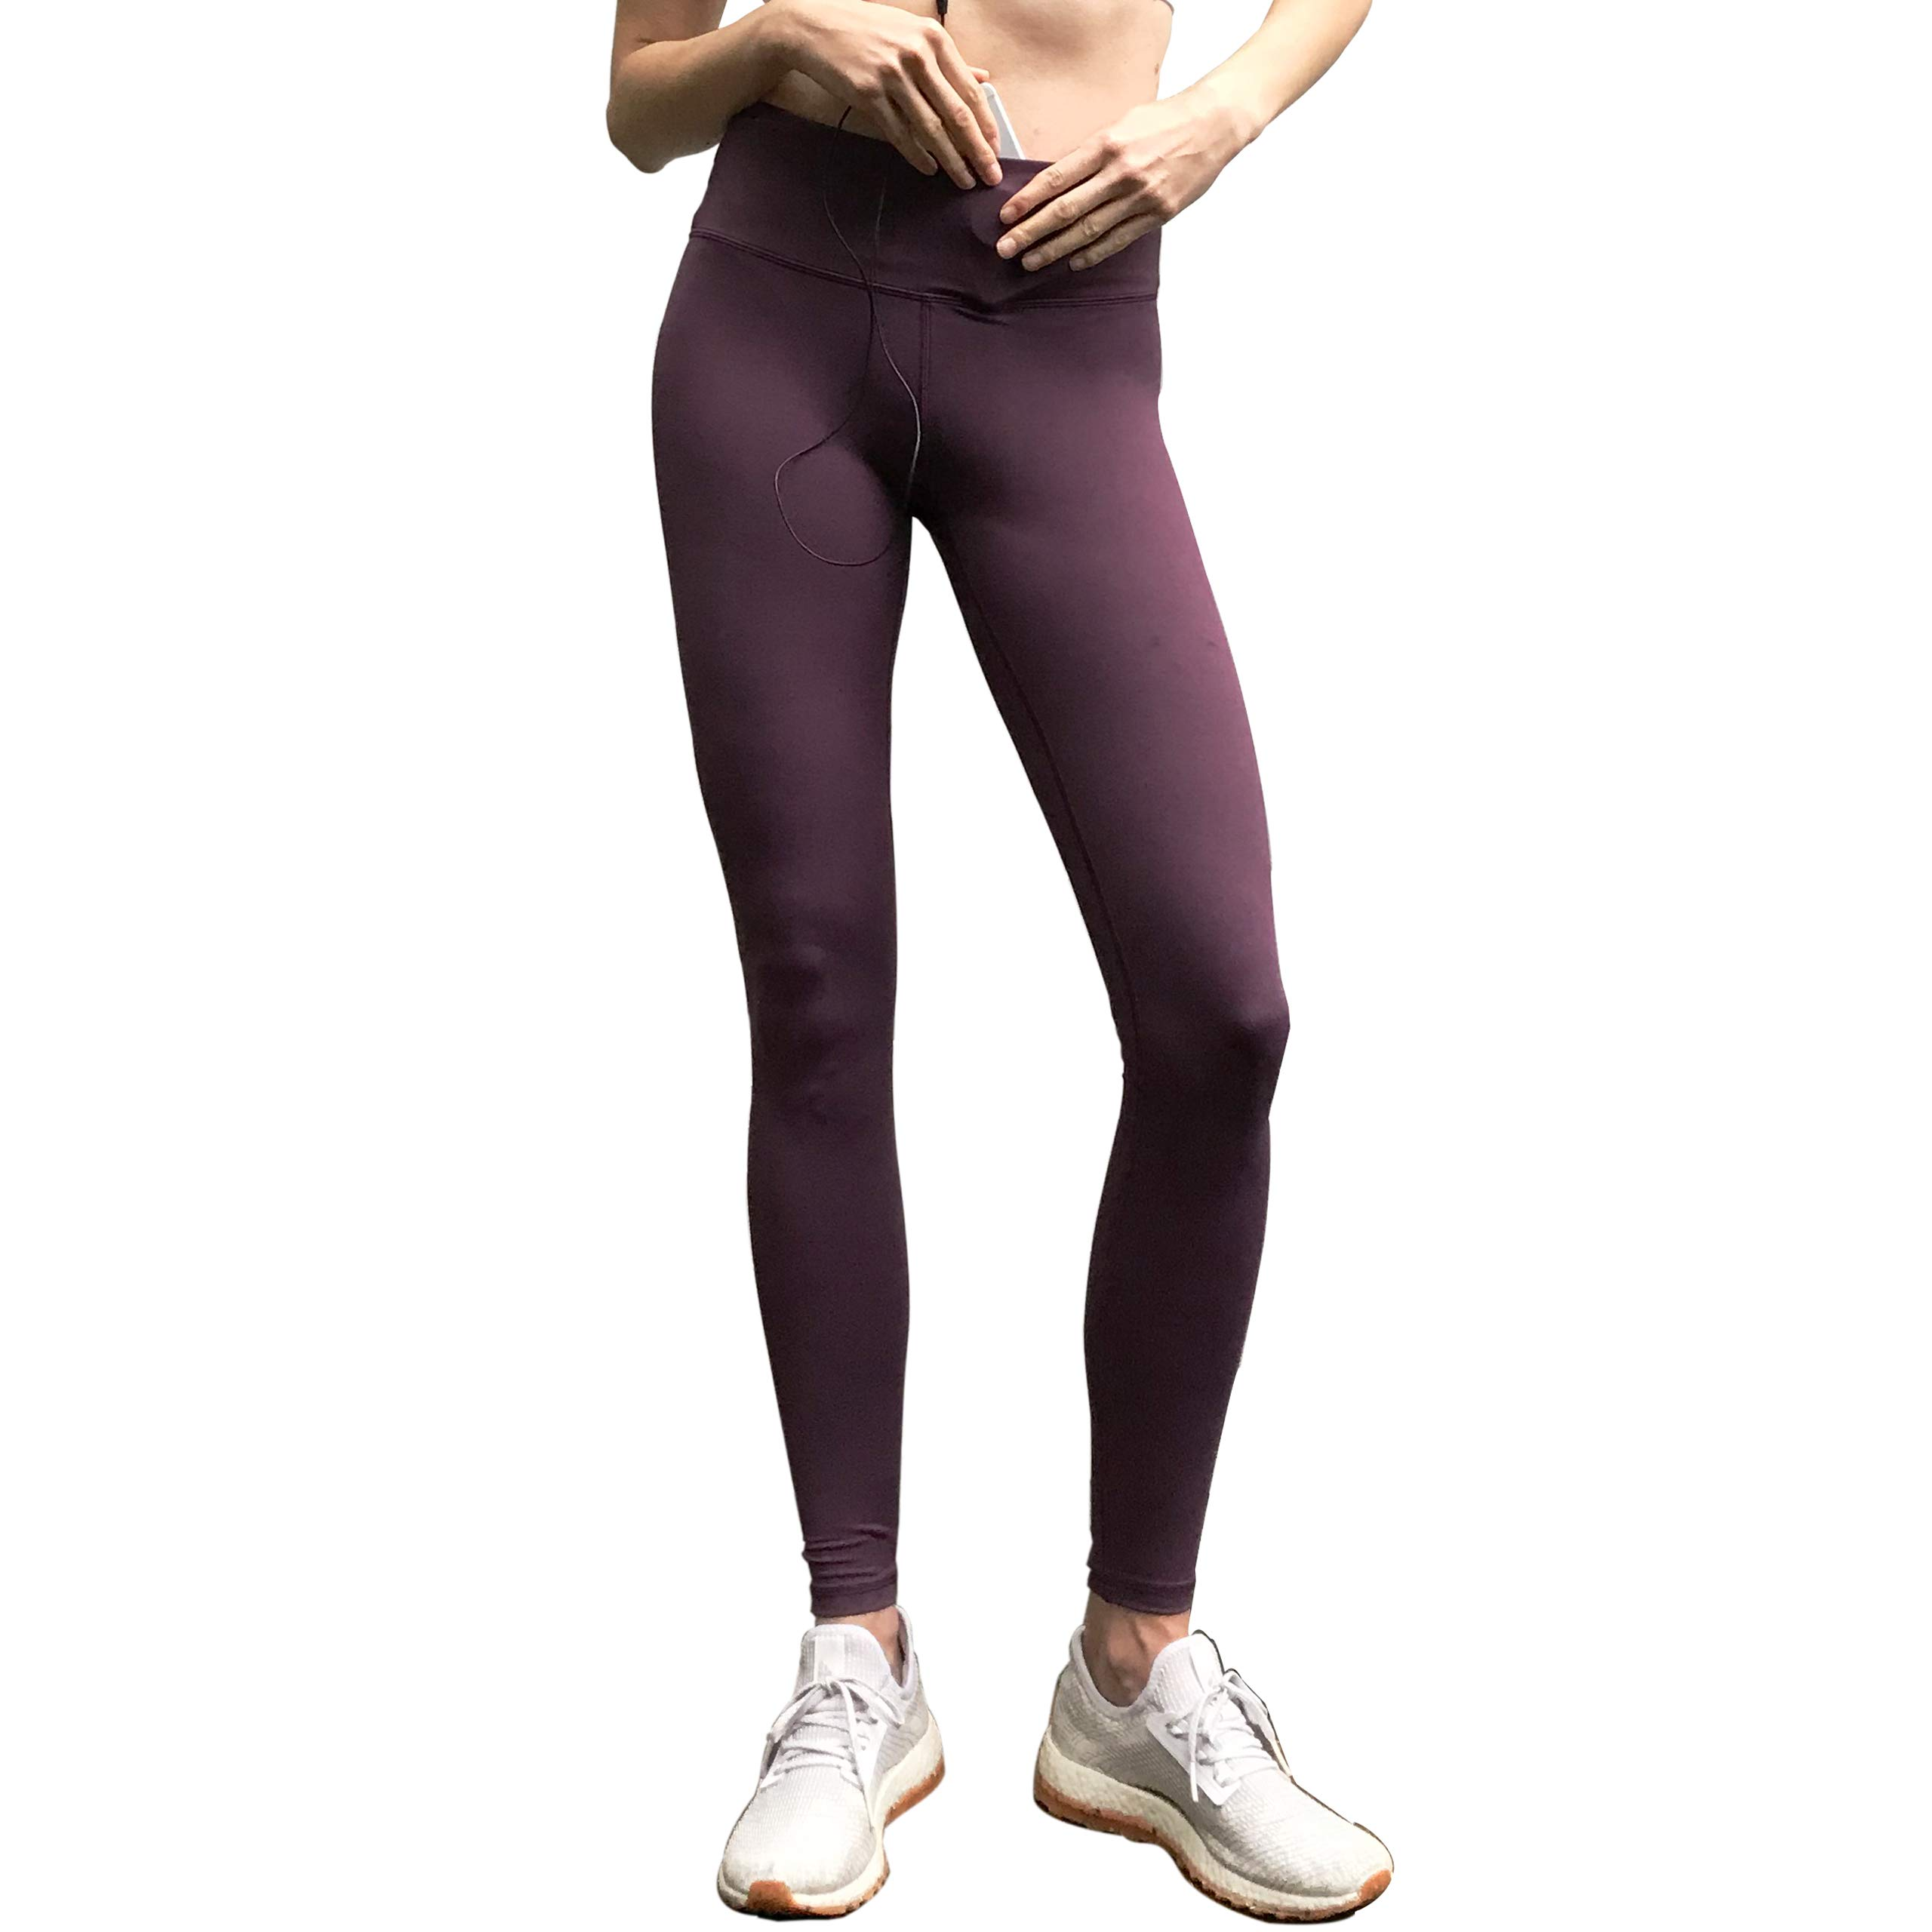 Sport-it Women's High Waisted Yoga Pants with Pockets, Workout Running Leggings Tummy Control, Athletic High Waist Tights